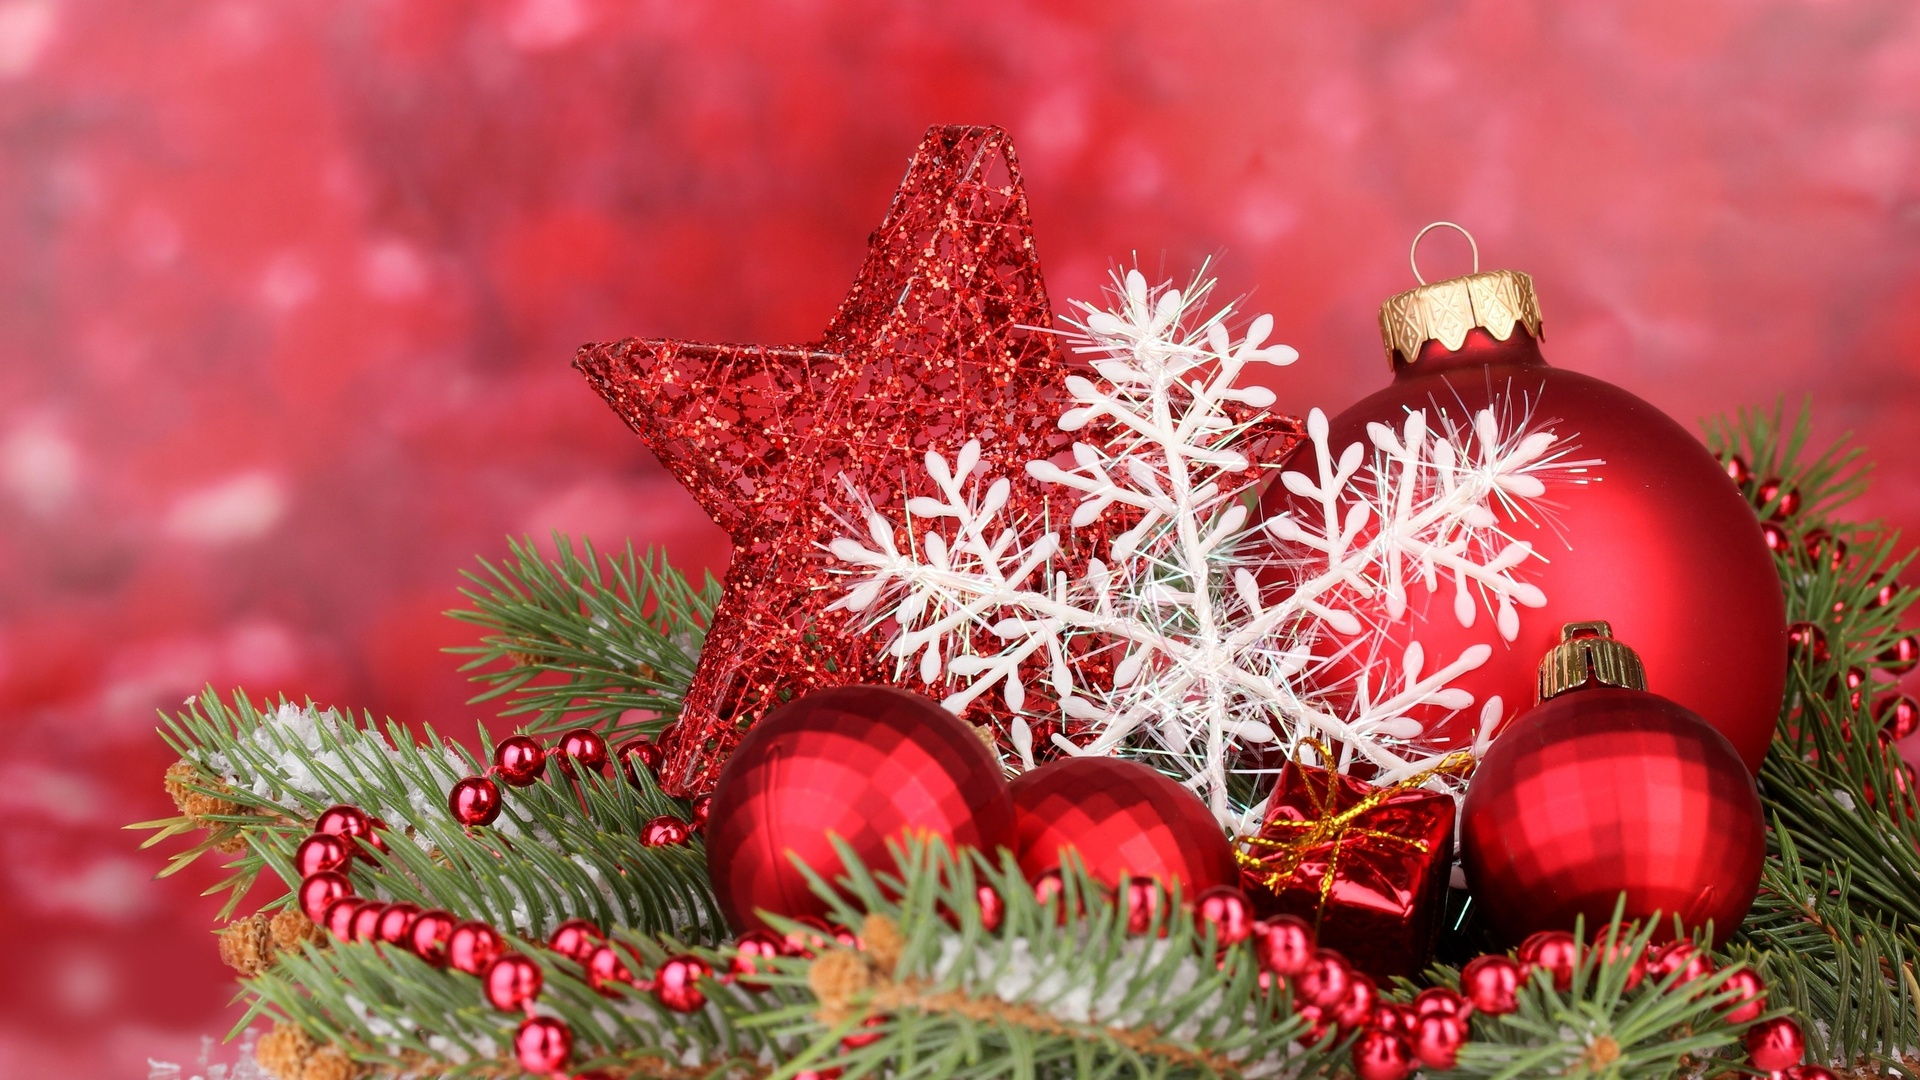 Christmas Ornaments 1479609 Hd Wallpaper Backgrounds